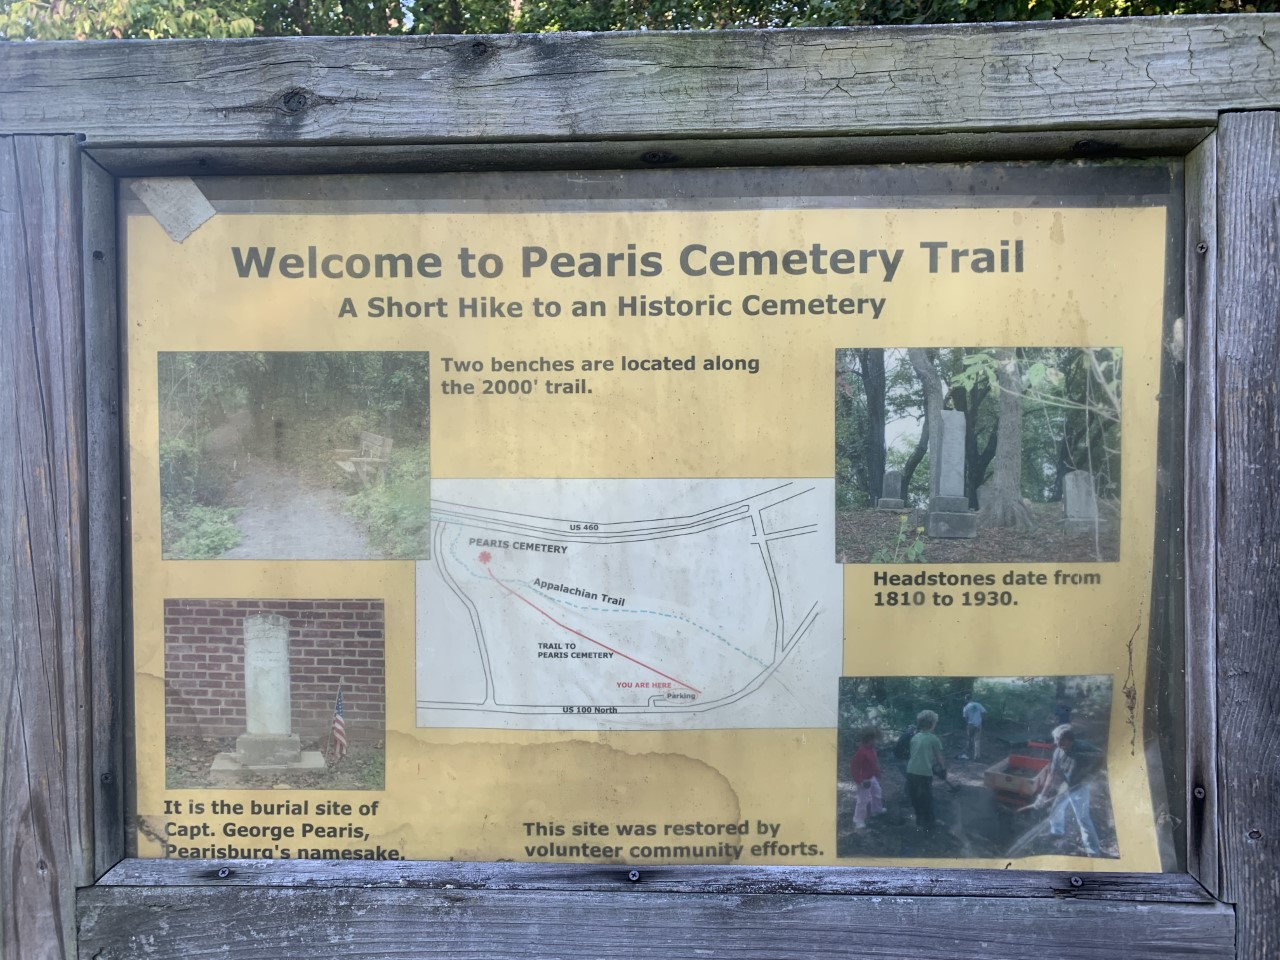 Sign located at the beginning of the Pearis Cemetery Trail